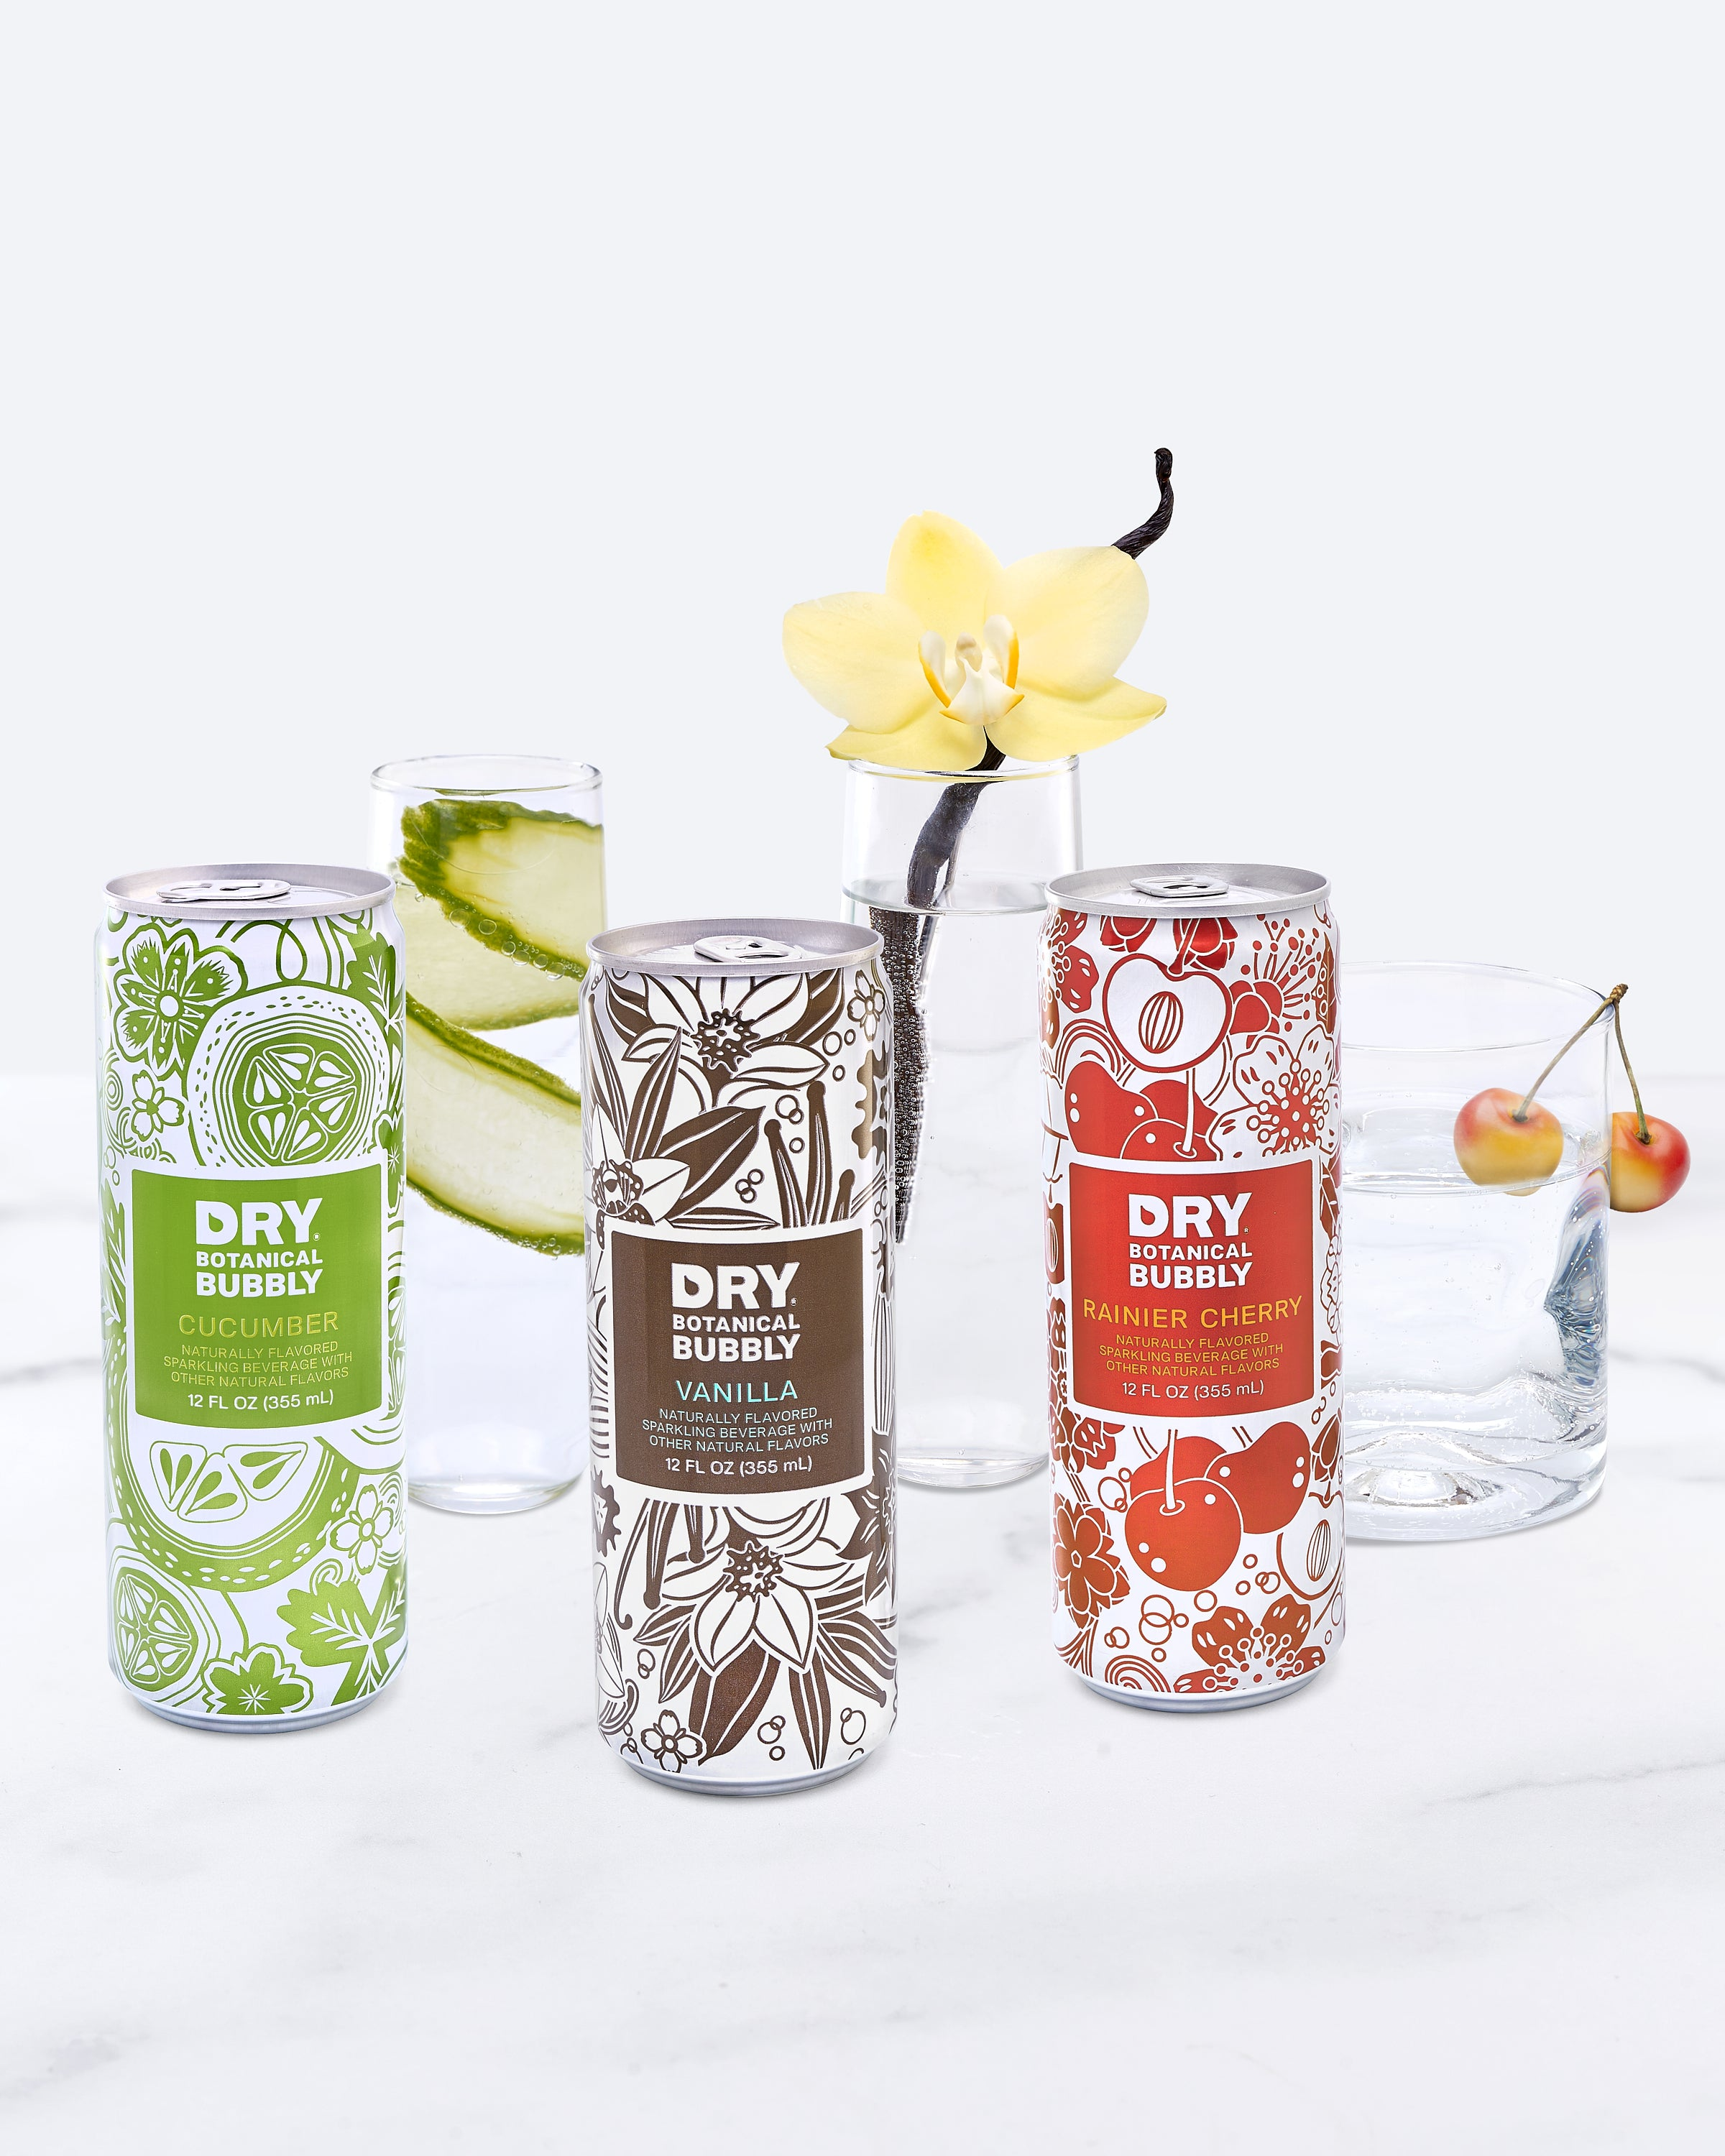 DRY Botanical Bubbly Can Variety Pack (12 Pack)